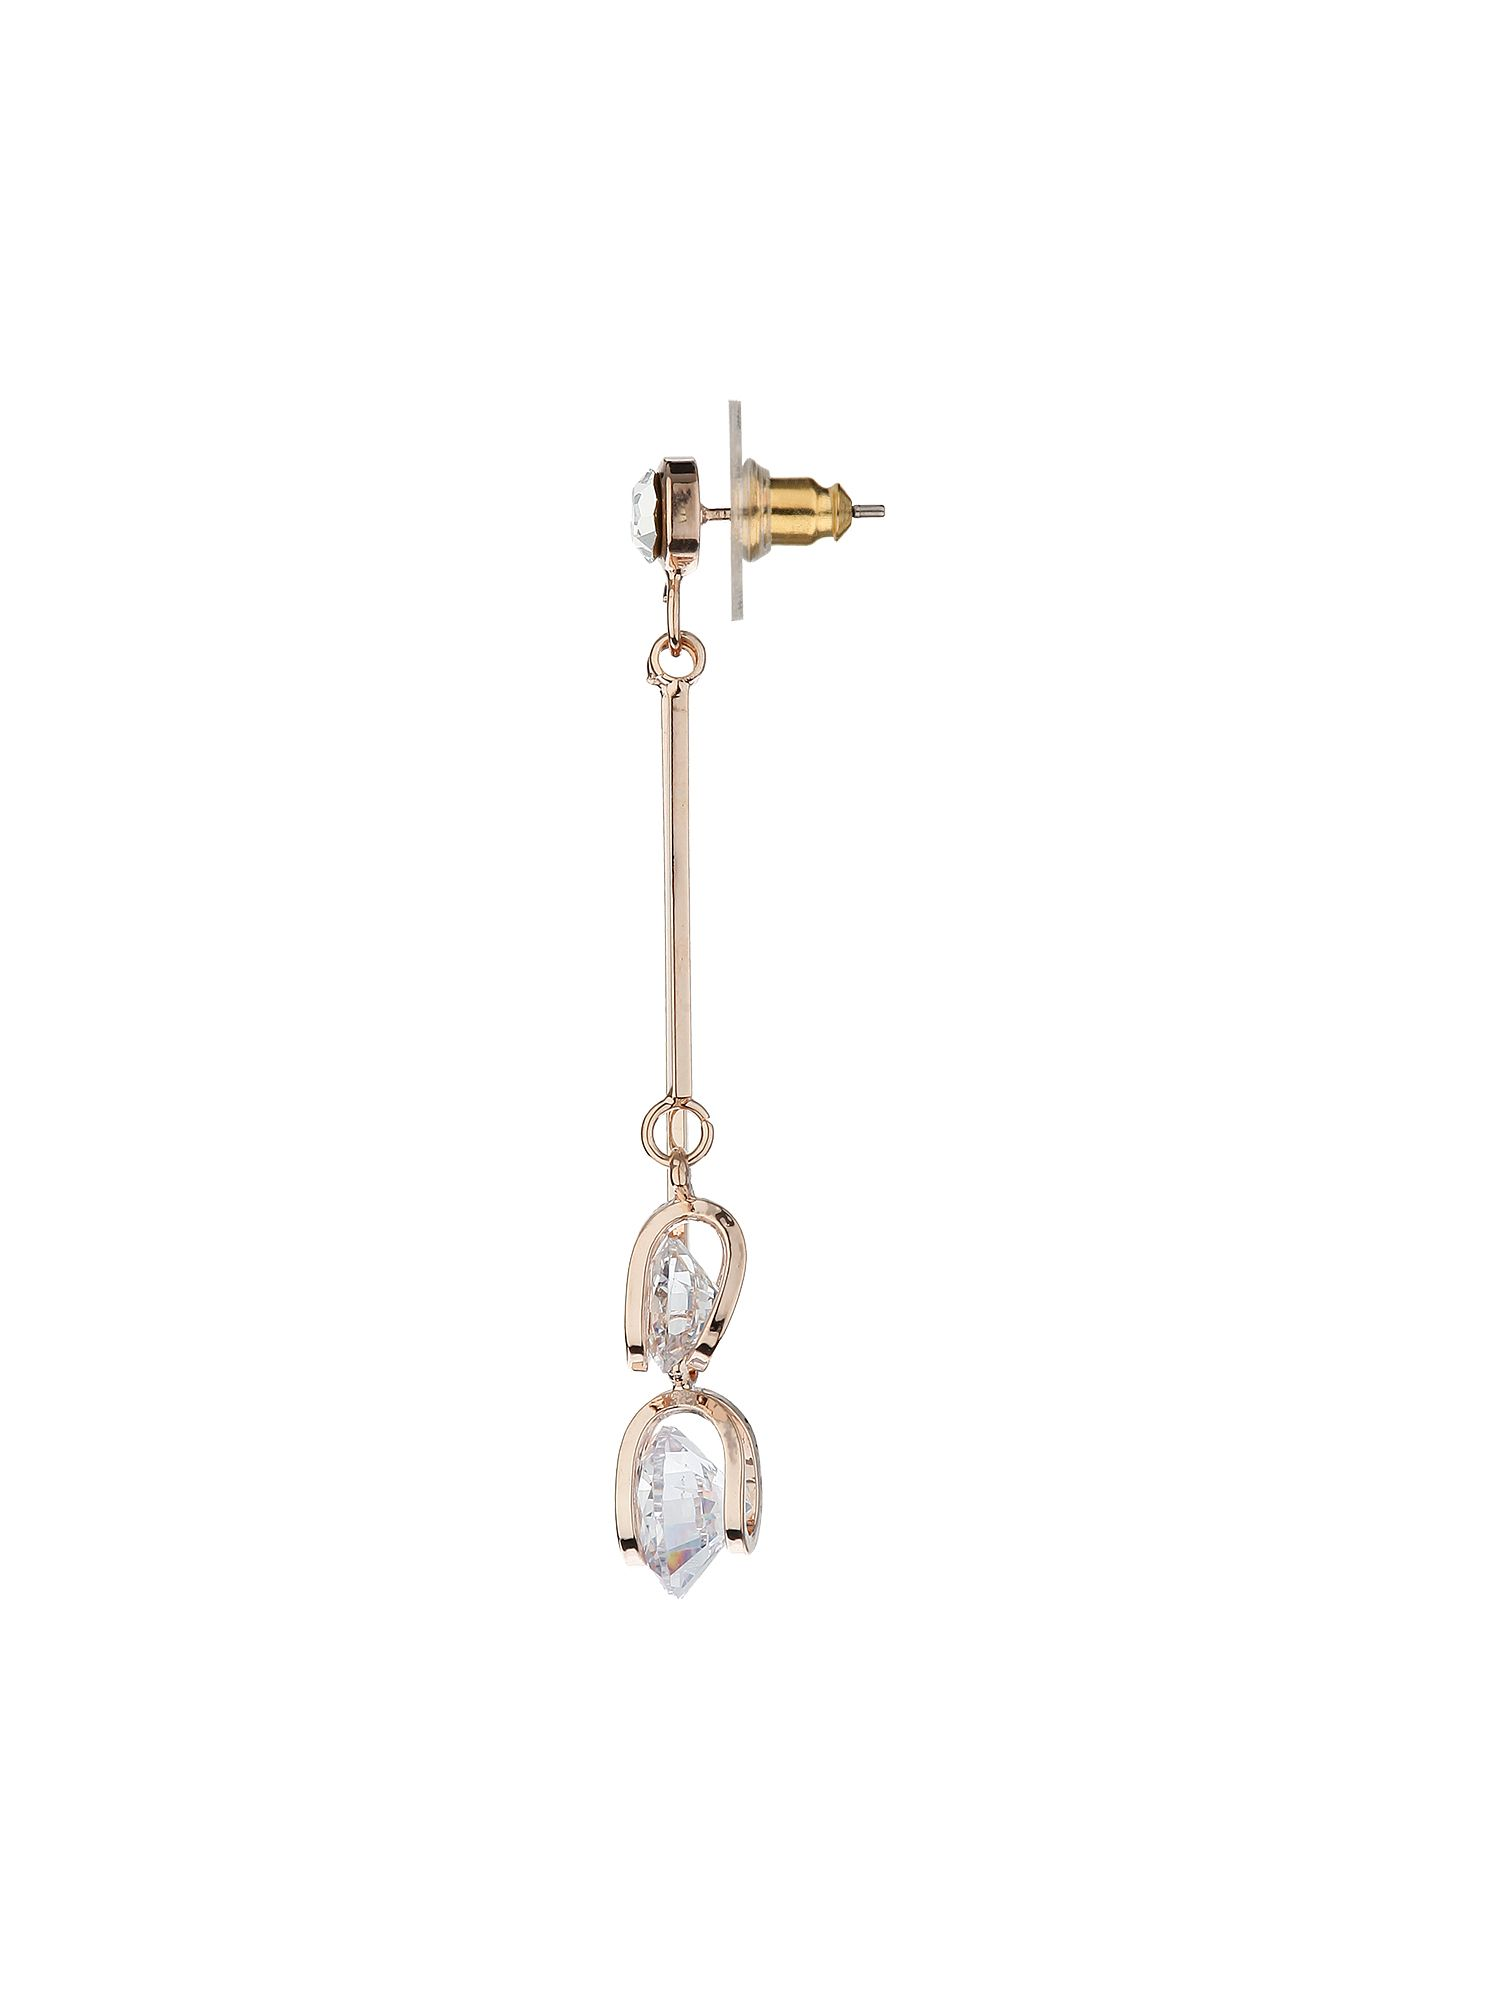 Cystals hanging on wire earring